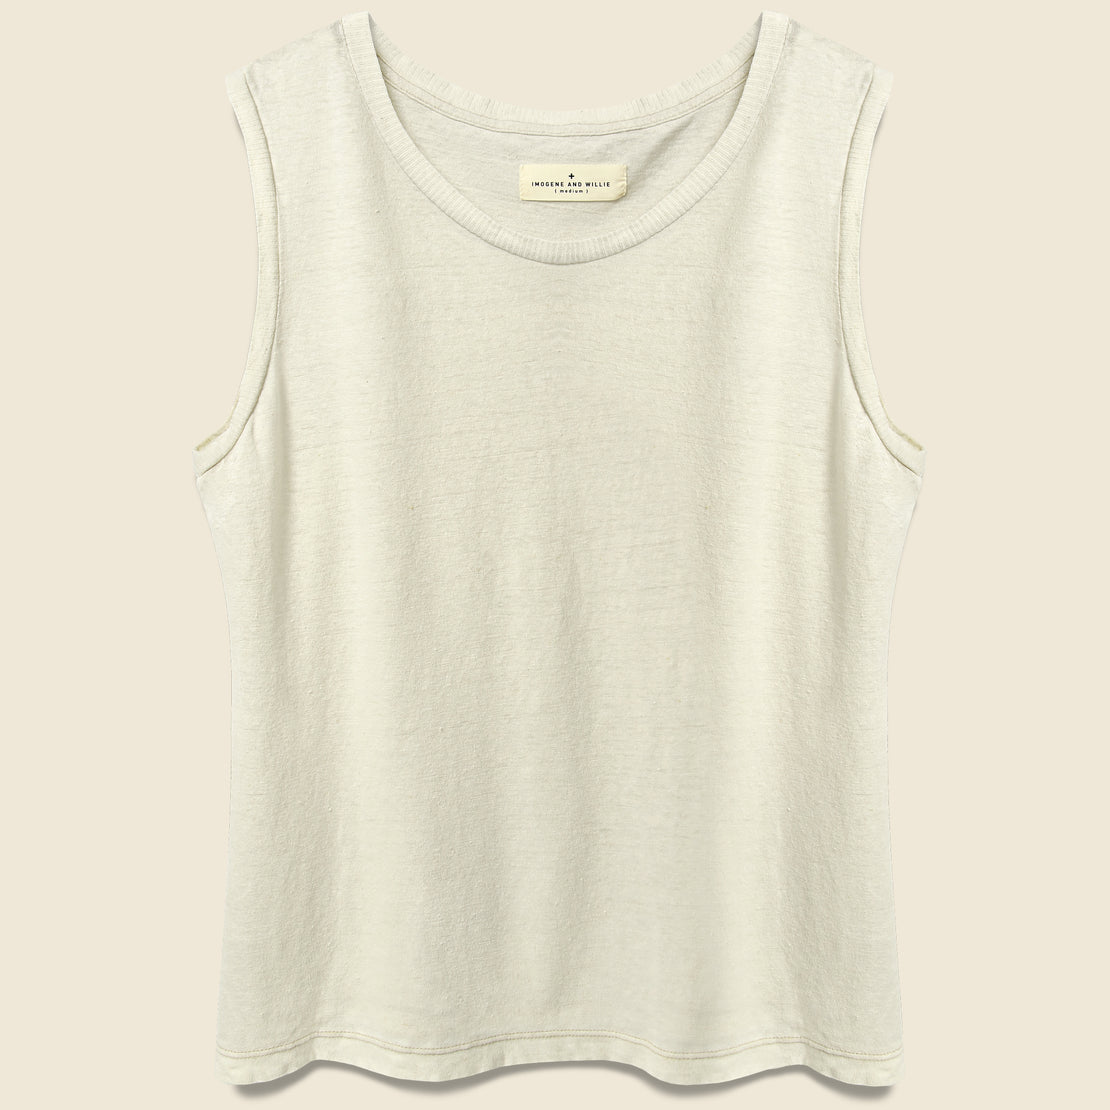 Imogene + Willie Cotton/Linen Muscle Tee - Natural